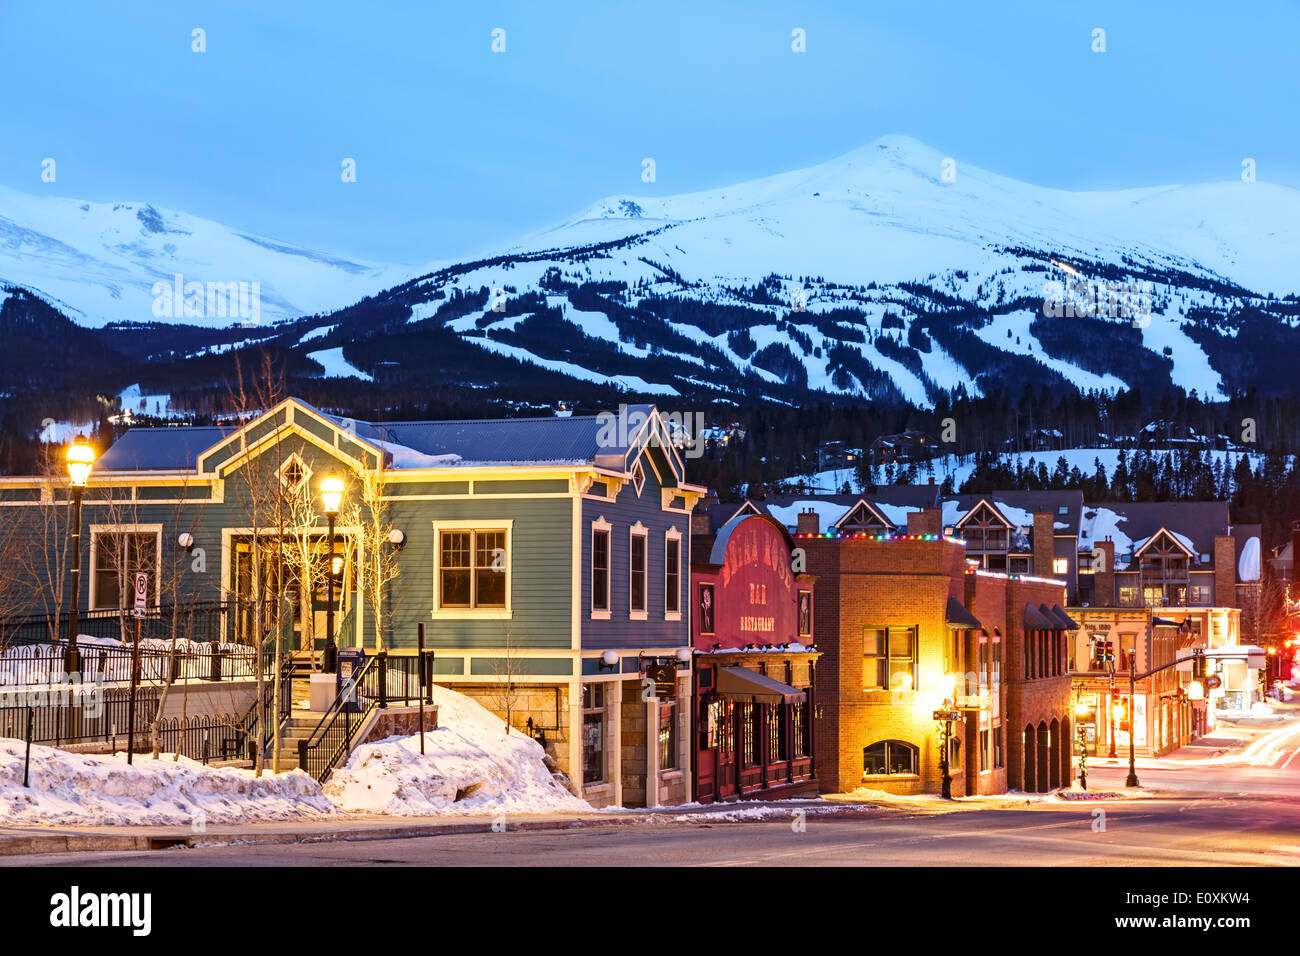 8 Pics couverts de neige, ski area et le centre-ville de Breckenridge, Colorado USA Photo Stock